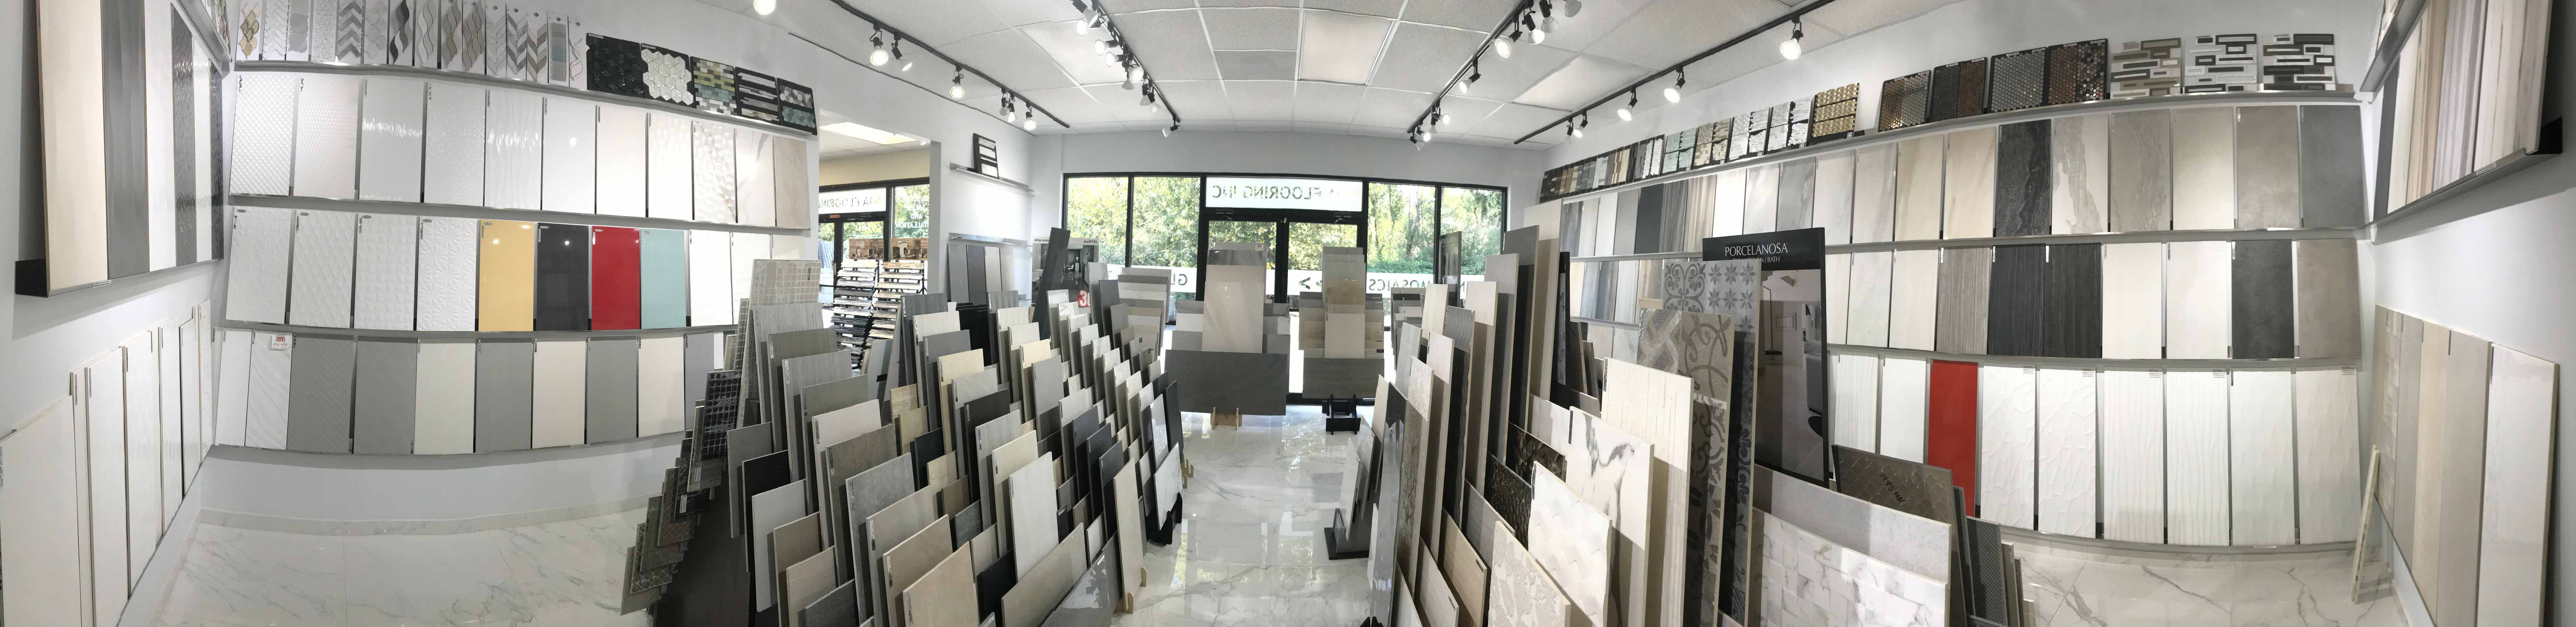 sda flooring tile store and installation